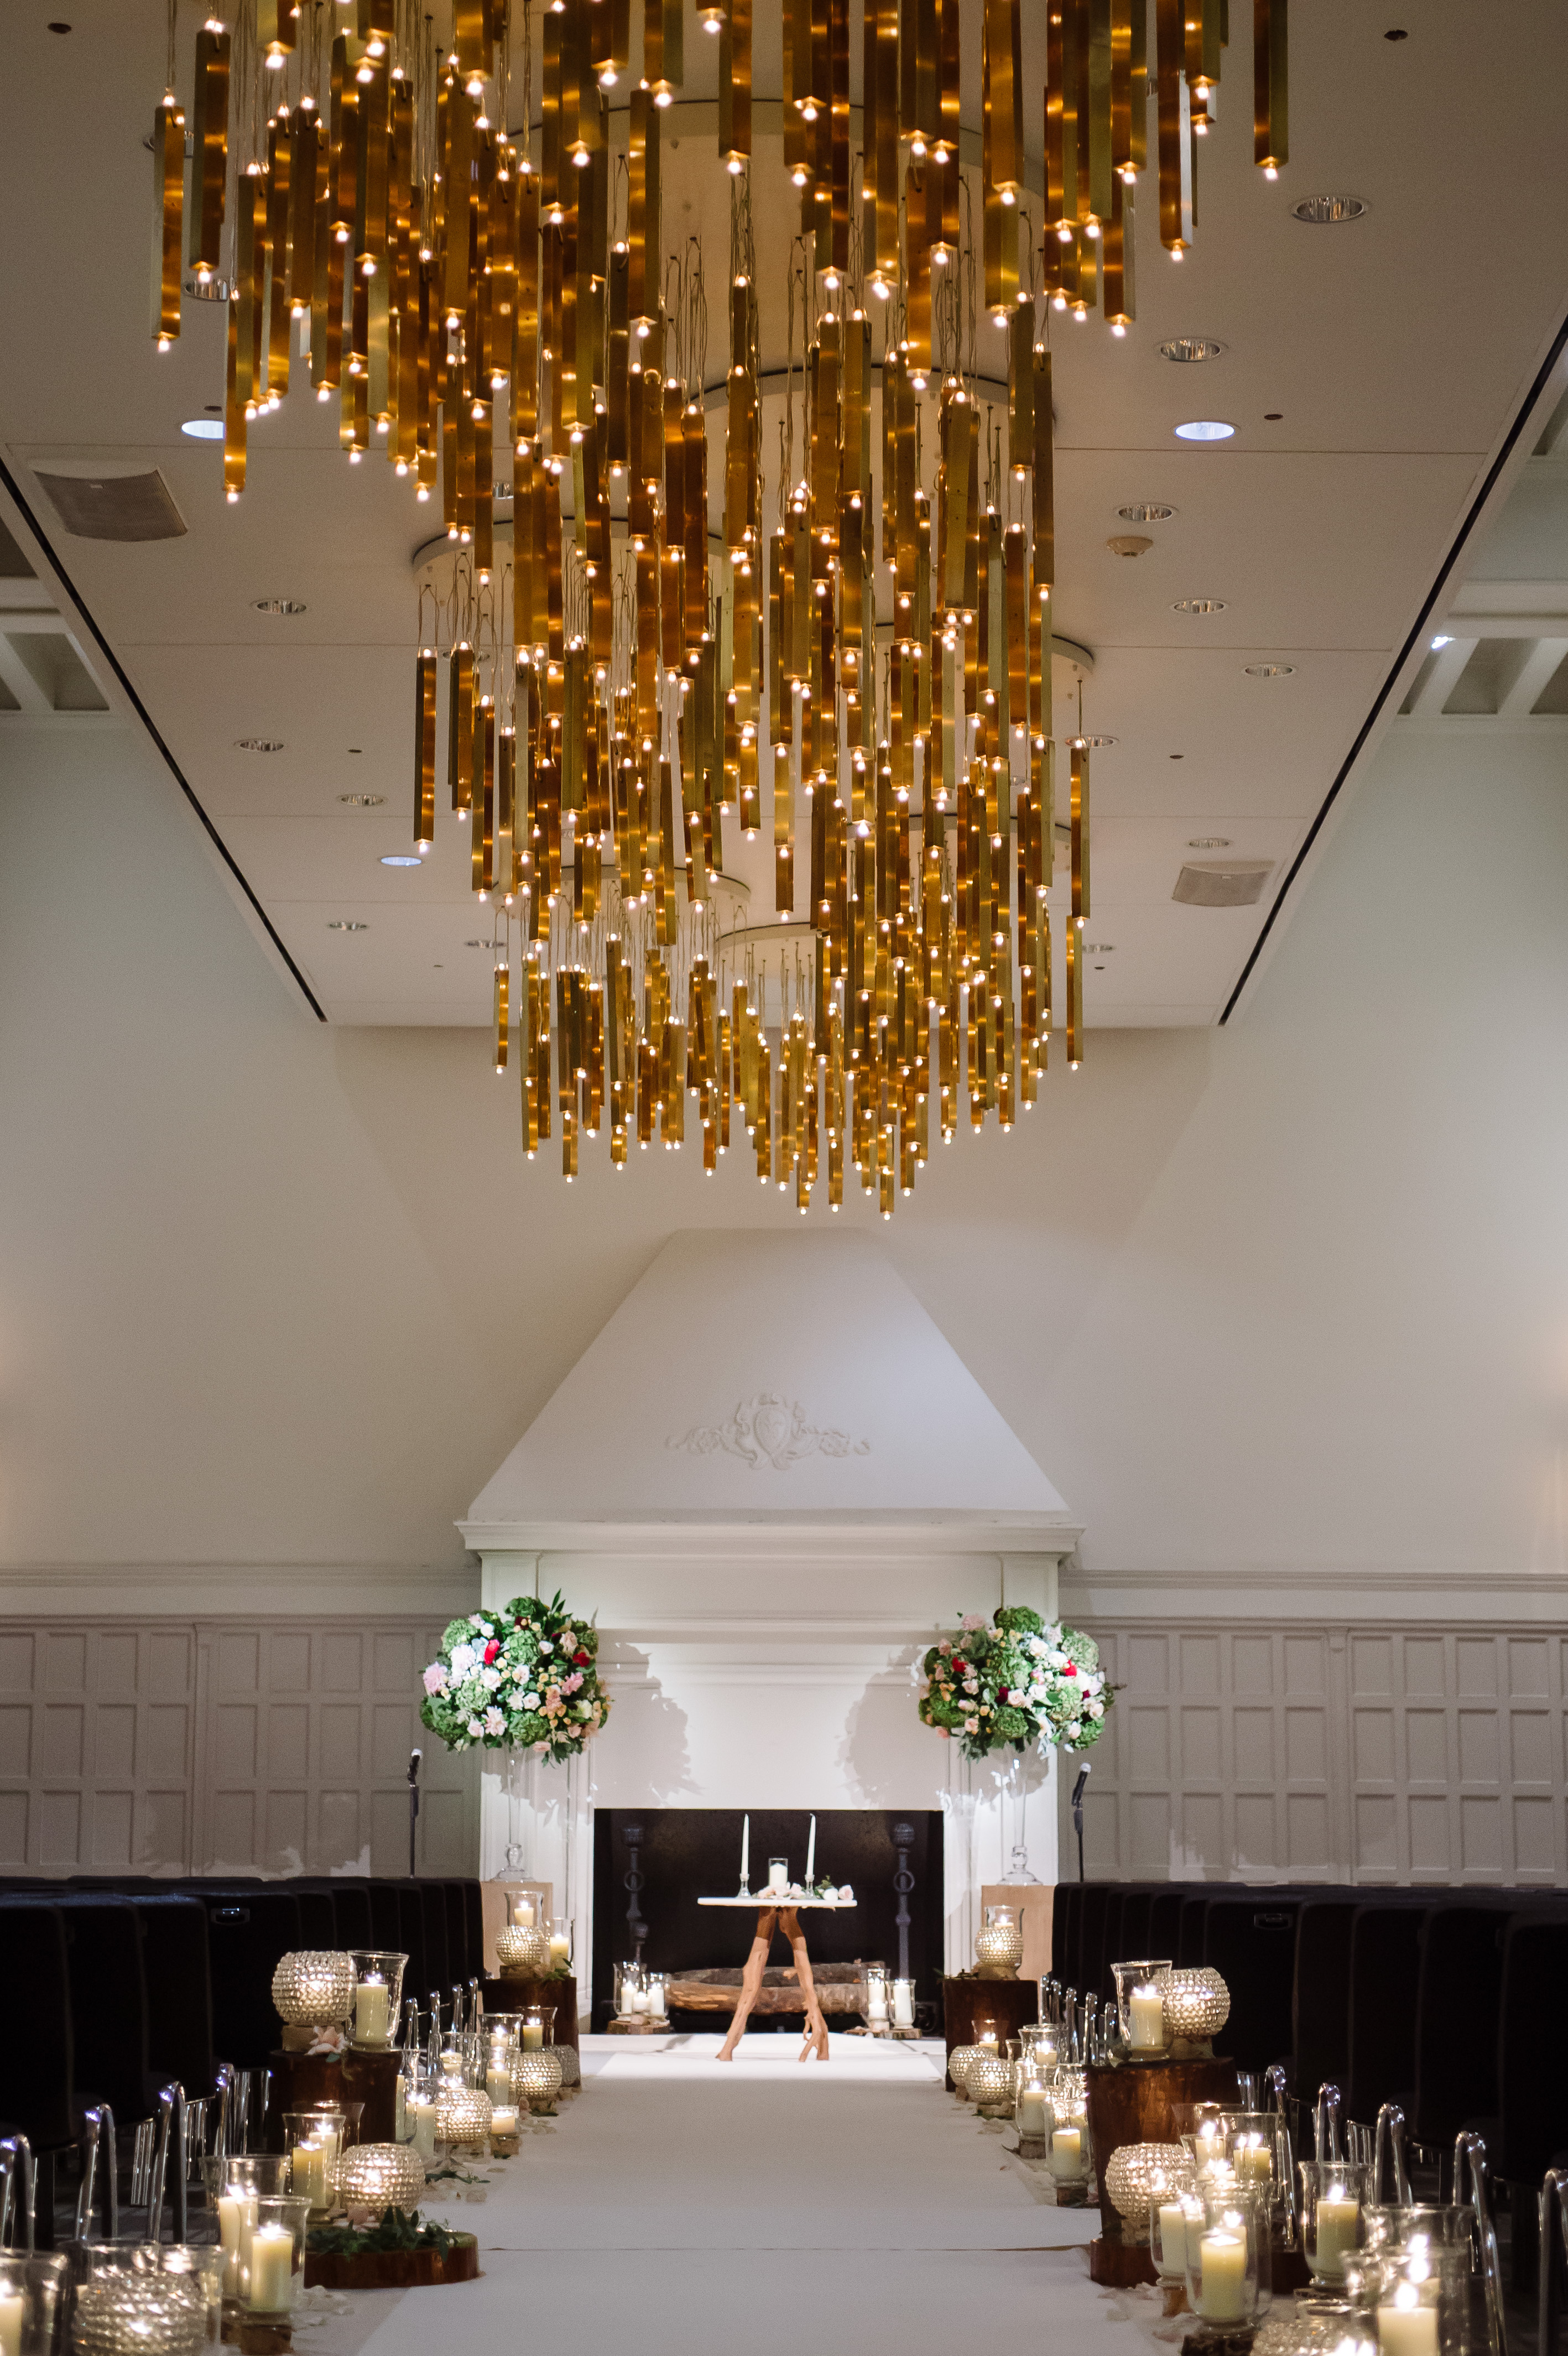 Rustic + Contemporary Elegant Ballroom Wedding - Shannon Gail Events